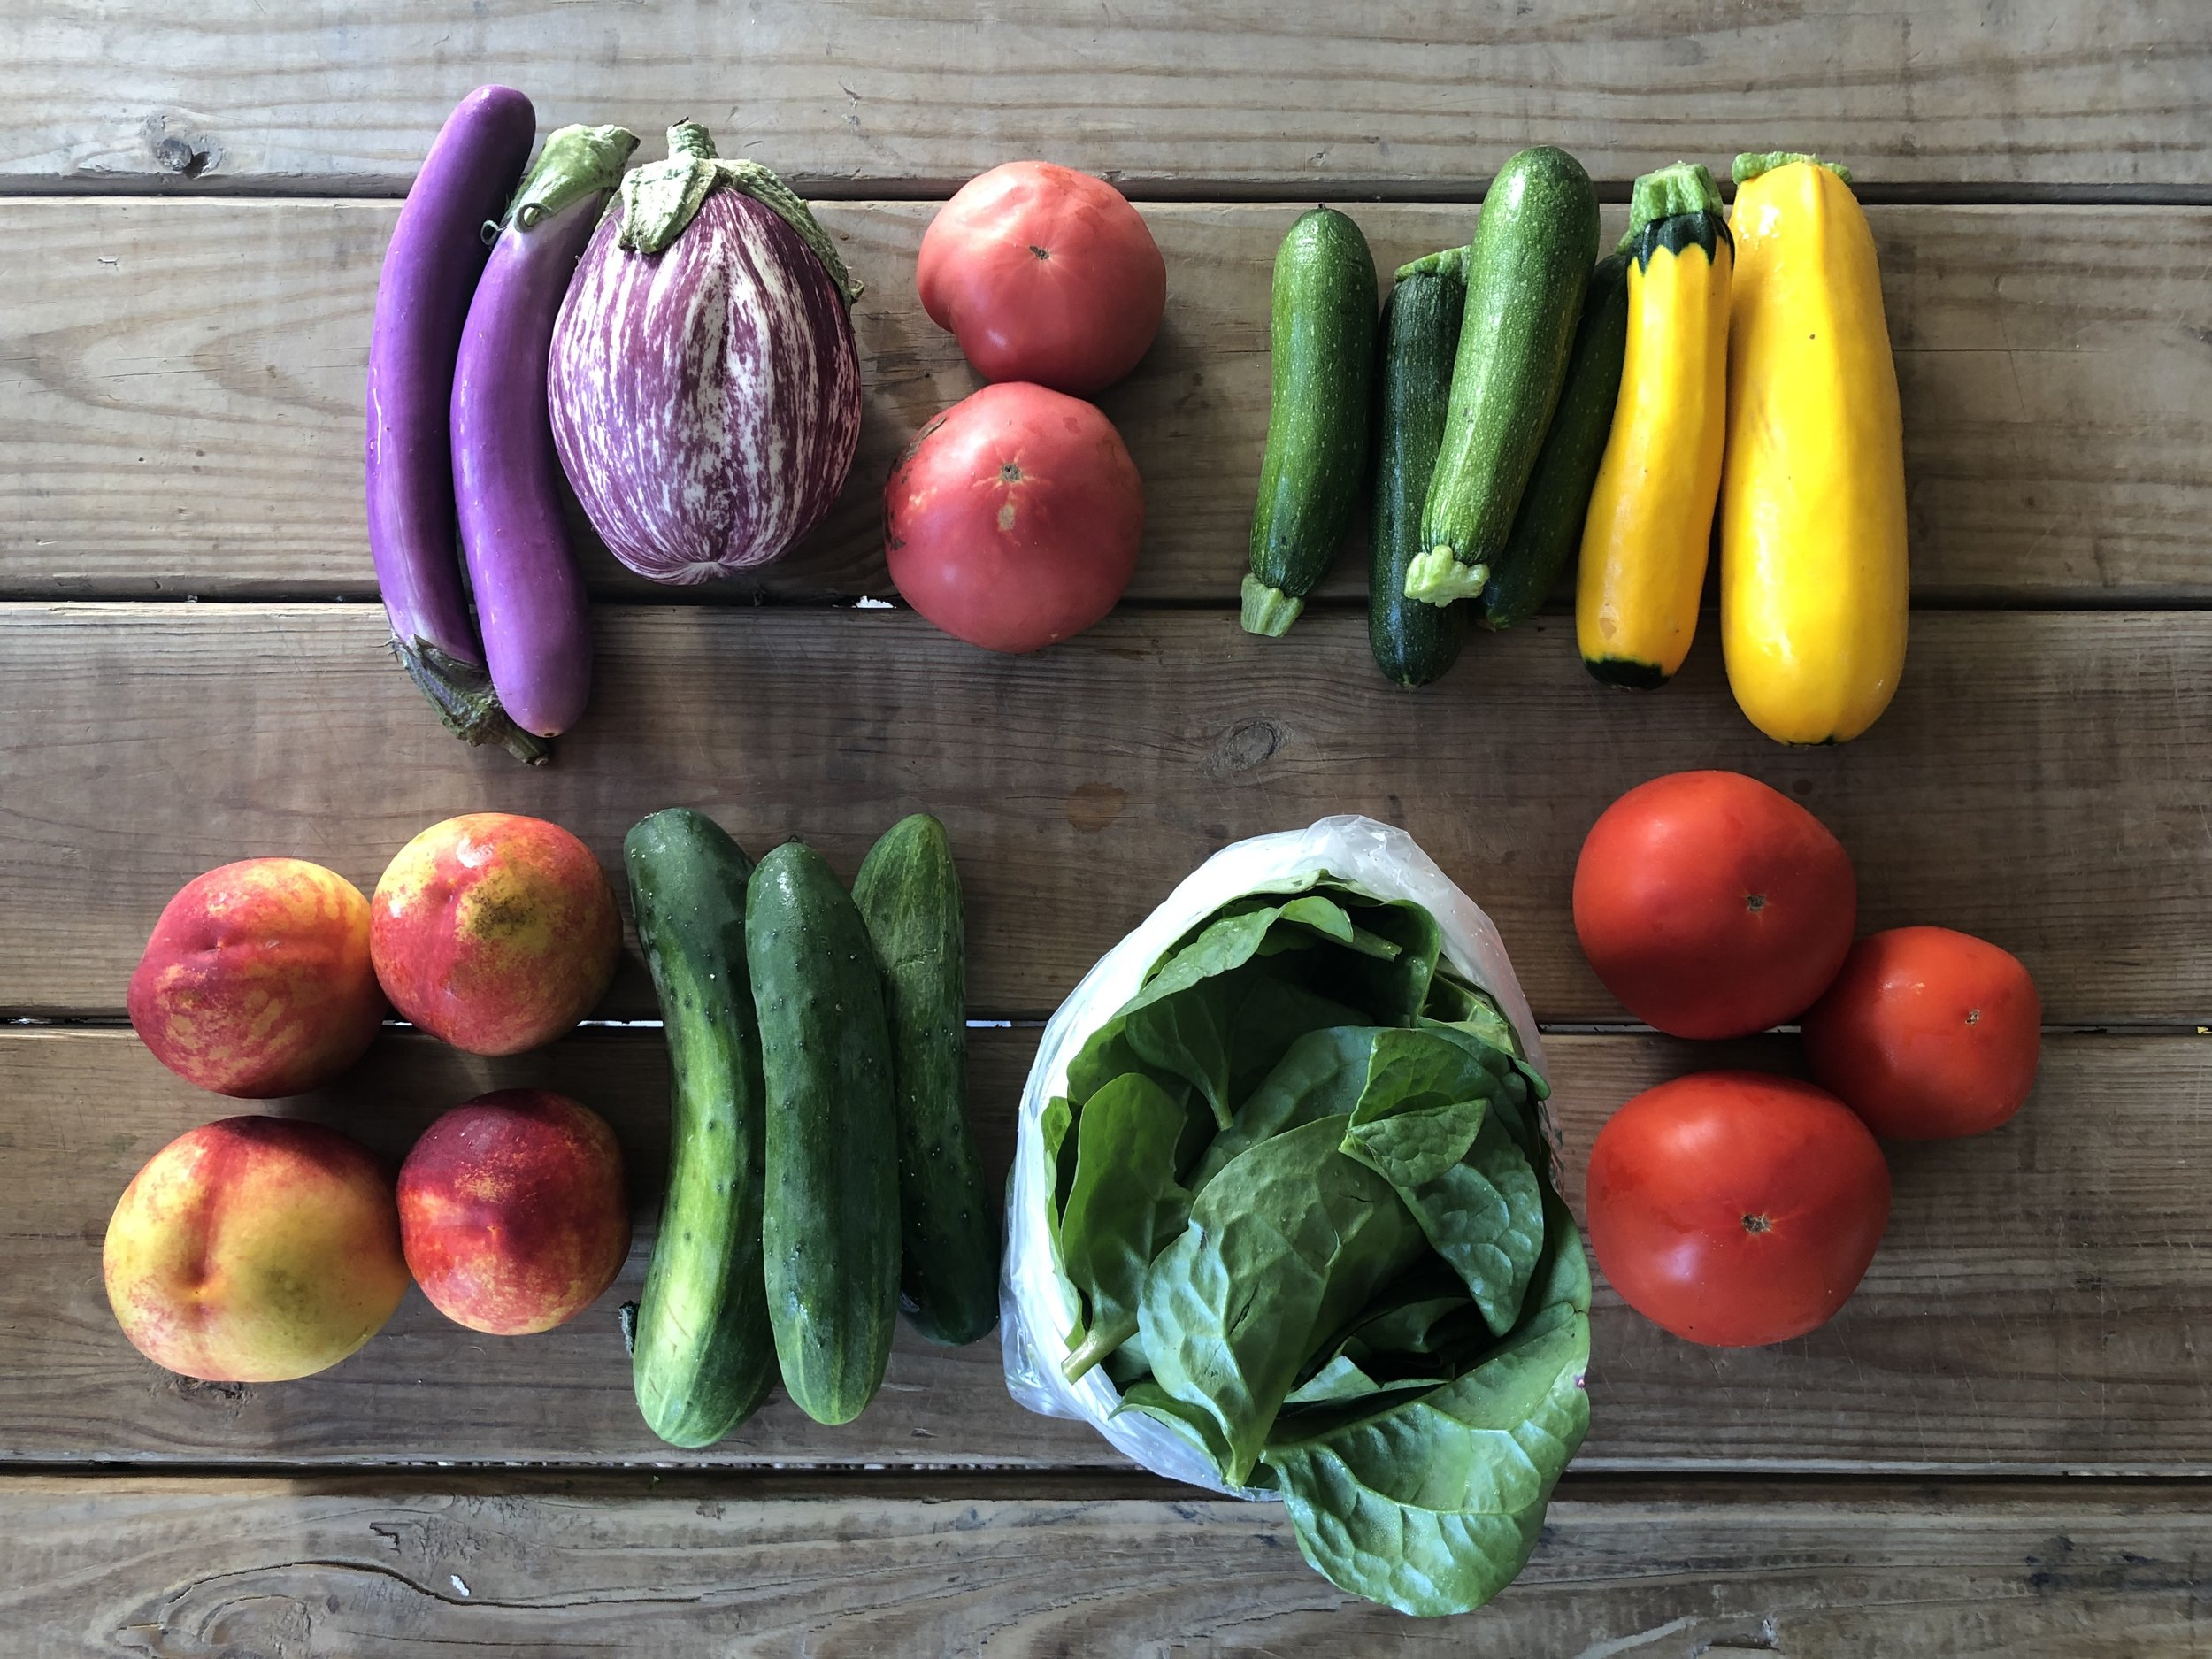 Top Row: Eggplant, Heirloom Tomatoes, Zucchini and Squash  Bottom Row: Nectarines, Cucumbers, Malabar Spinach, and Beefsteak Tomatoes